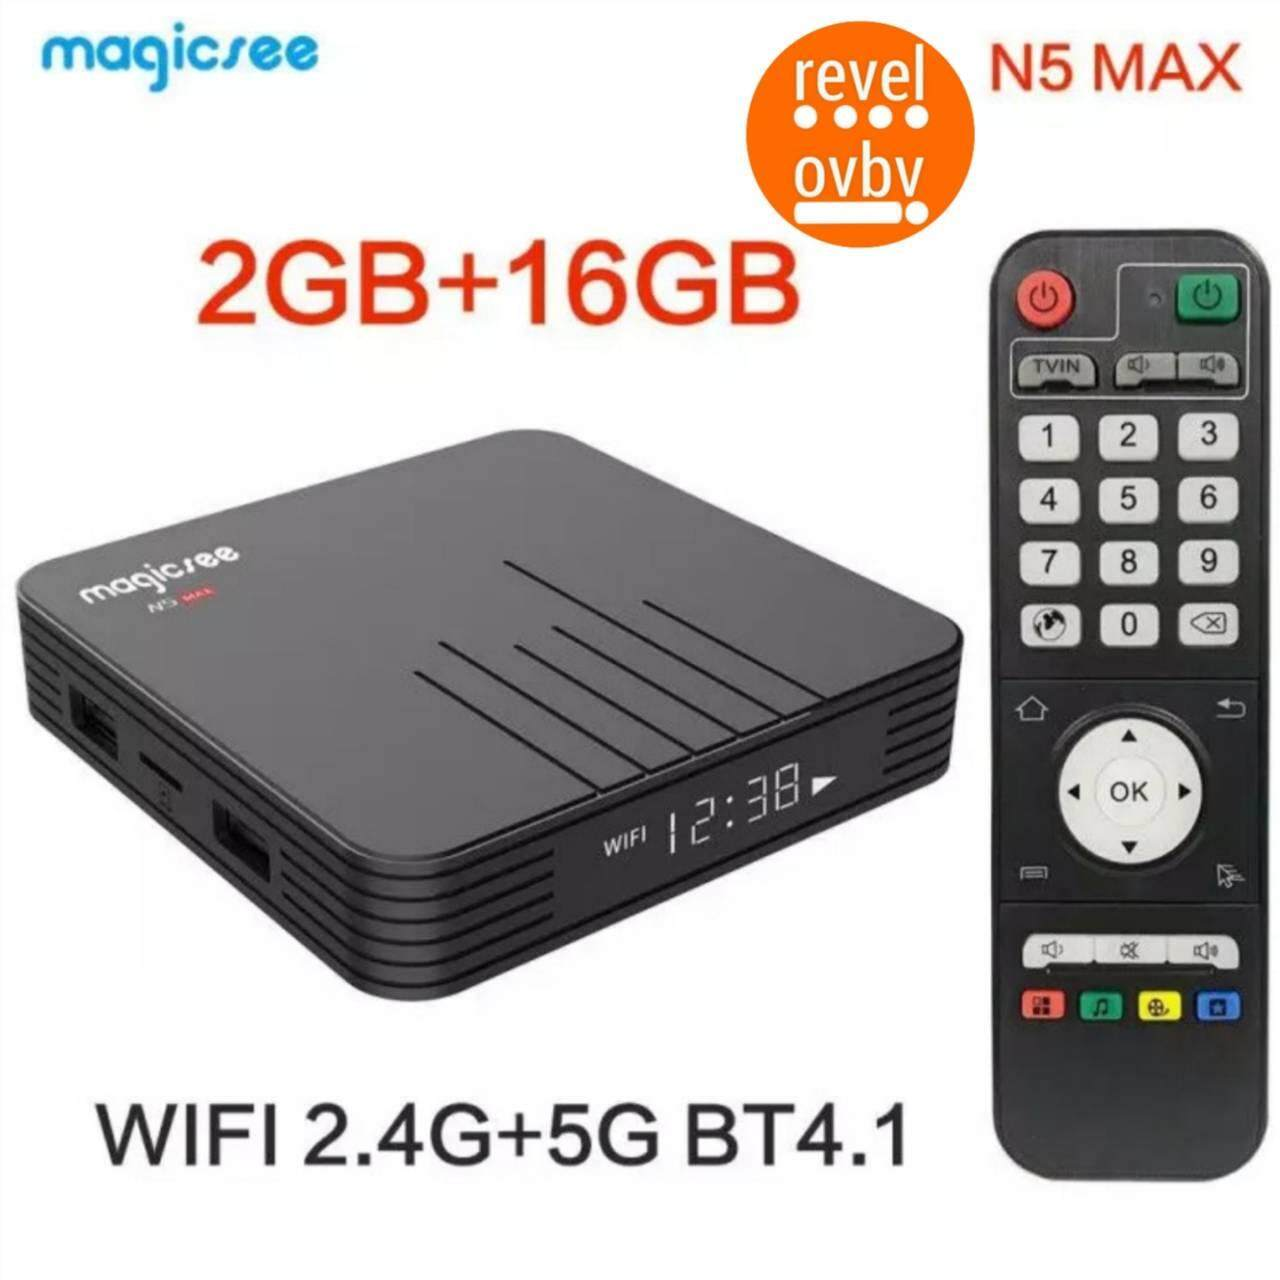 การใช้งาน  อุบลราชธานี Magicsee N5 Max Amlogic S905X2 Android 9.0 TV BOX 4G 32G/64G Rom 2.4+5G Dual Wifi Bluetooth4.1 Smart Box 4K LAN 1000 Set Top Box